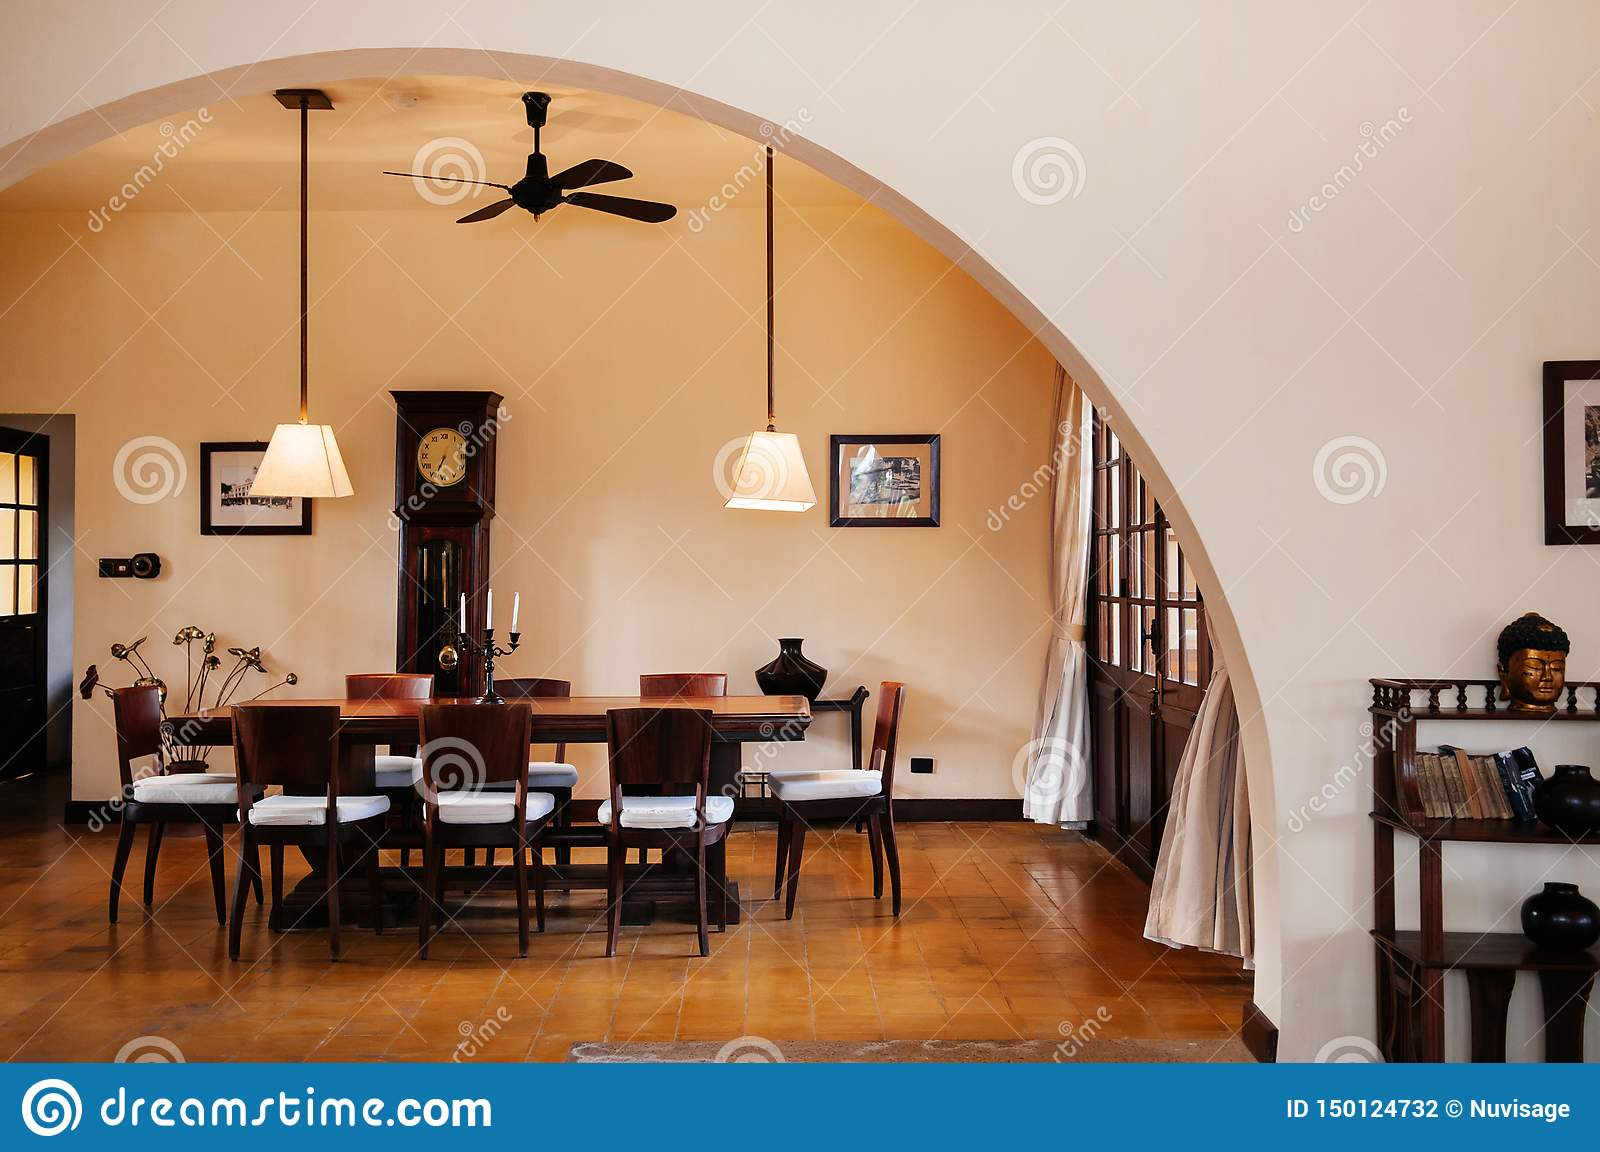 Superb Vintage Colonial Dinner Room With Hard Wood Table Chairs Machost Co Dining Chair Design Ideas Machostcouk